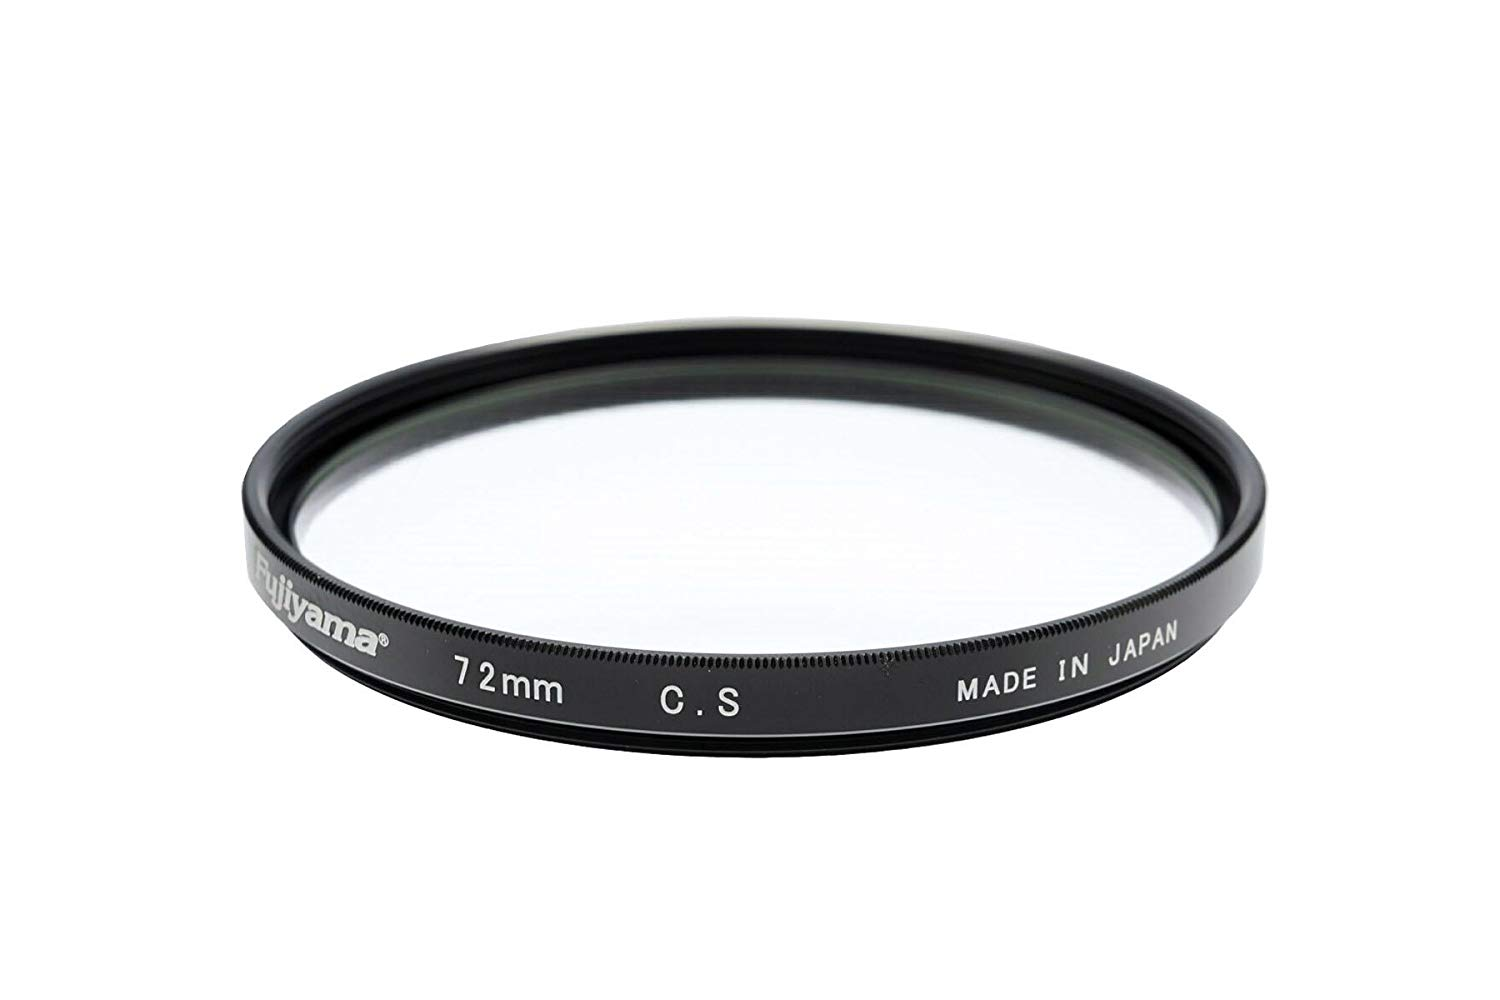 Fujiyama 72mm Cross Screen Filter Made in Japan for Sony Carl Zeiss Planar T 50mm F1.4 ZA SSM